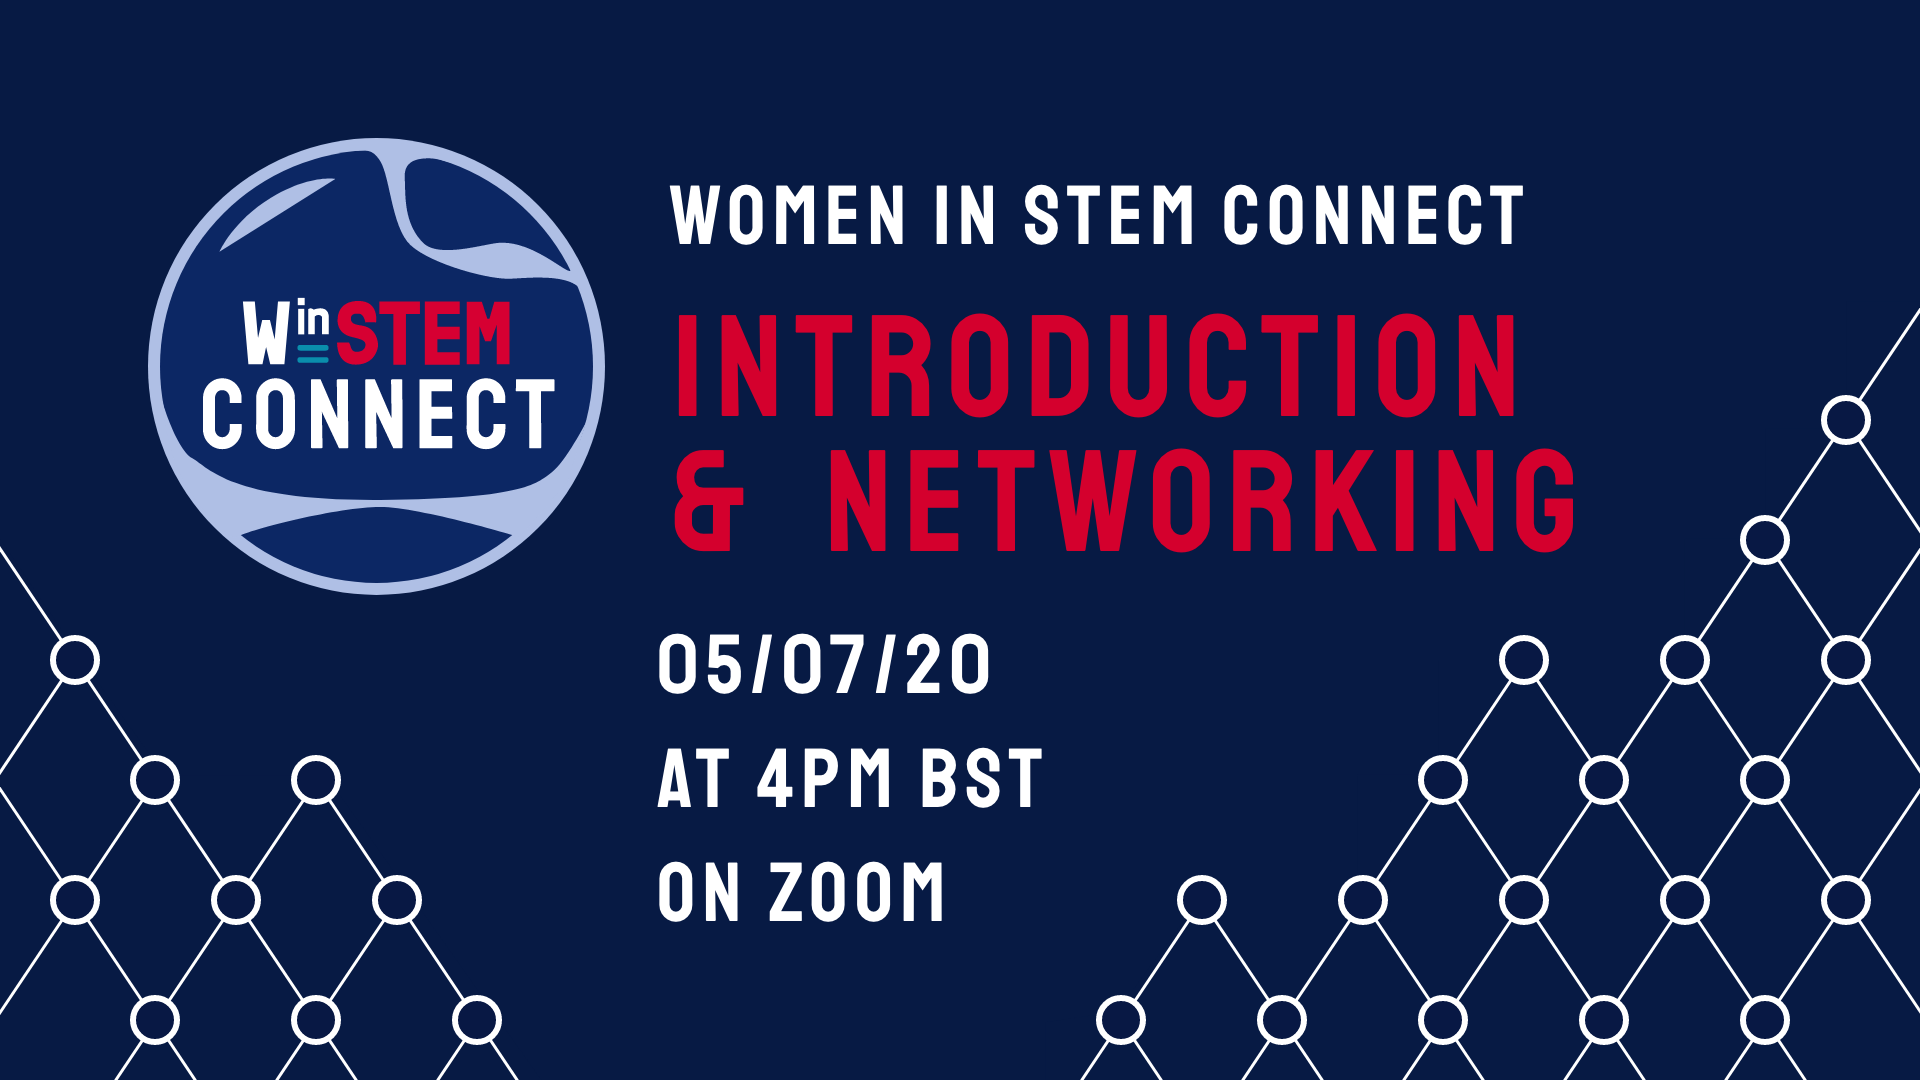 WiSTEM Connect event 1